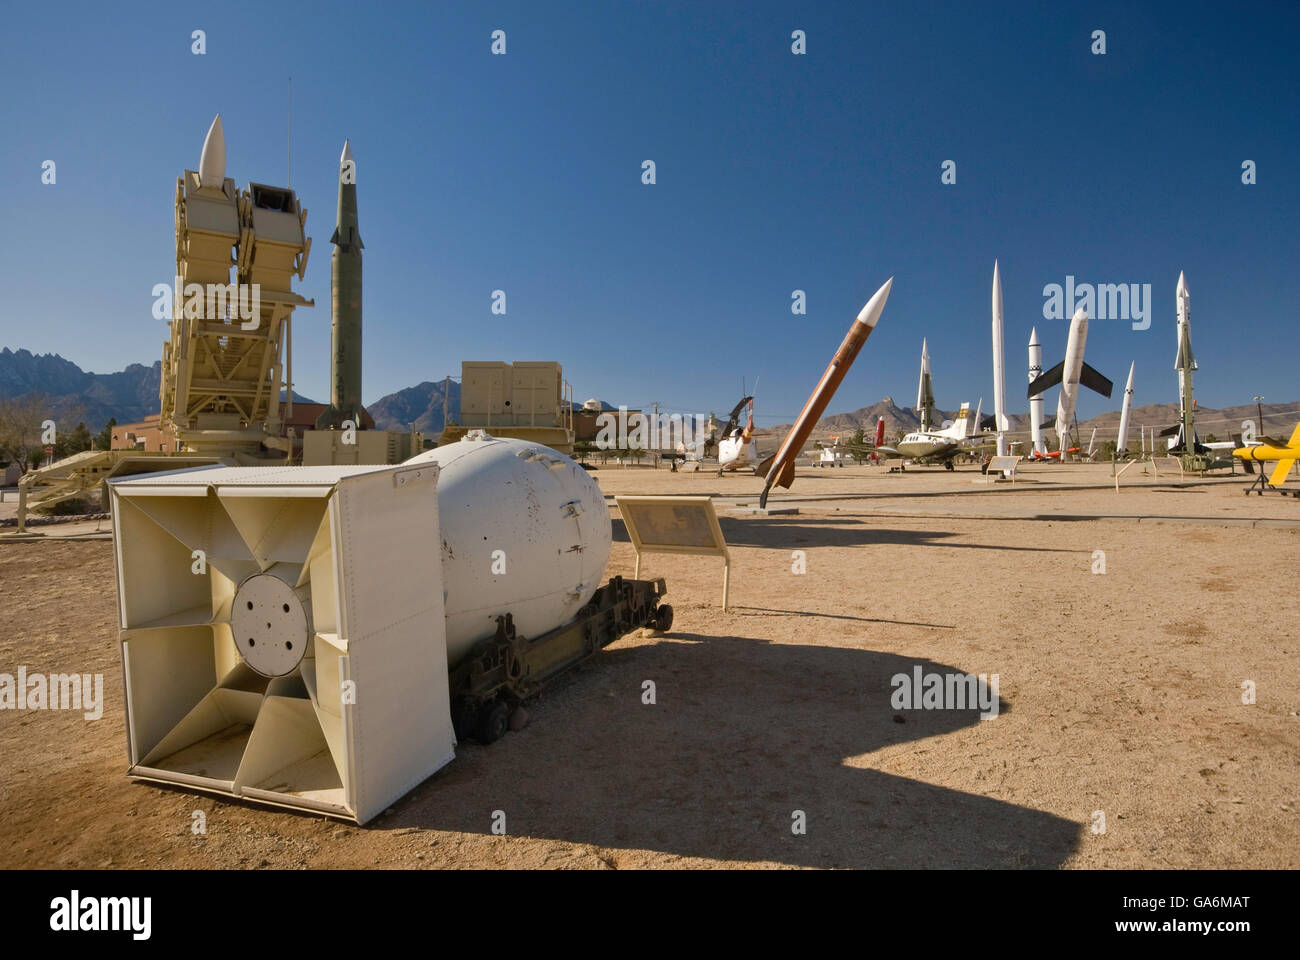 Fat Man nuclear bomb and rockets in Missile Park at White Sands Missile Range Museum near Las Cruces, New Mexico, - Stock Image